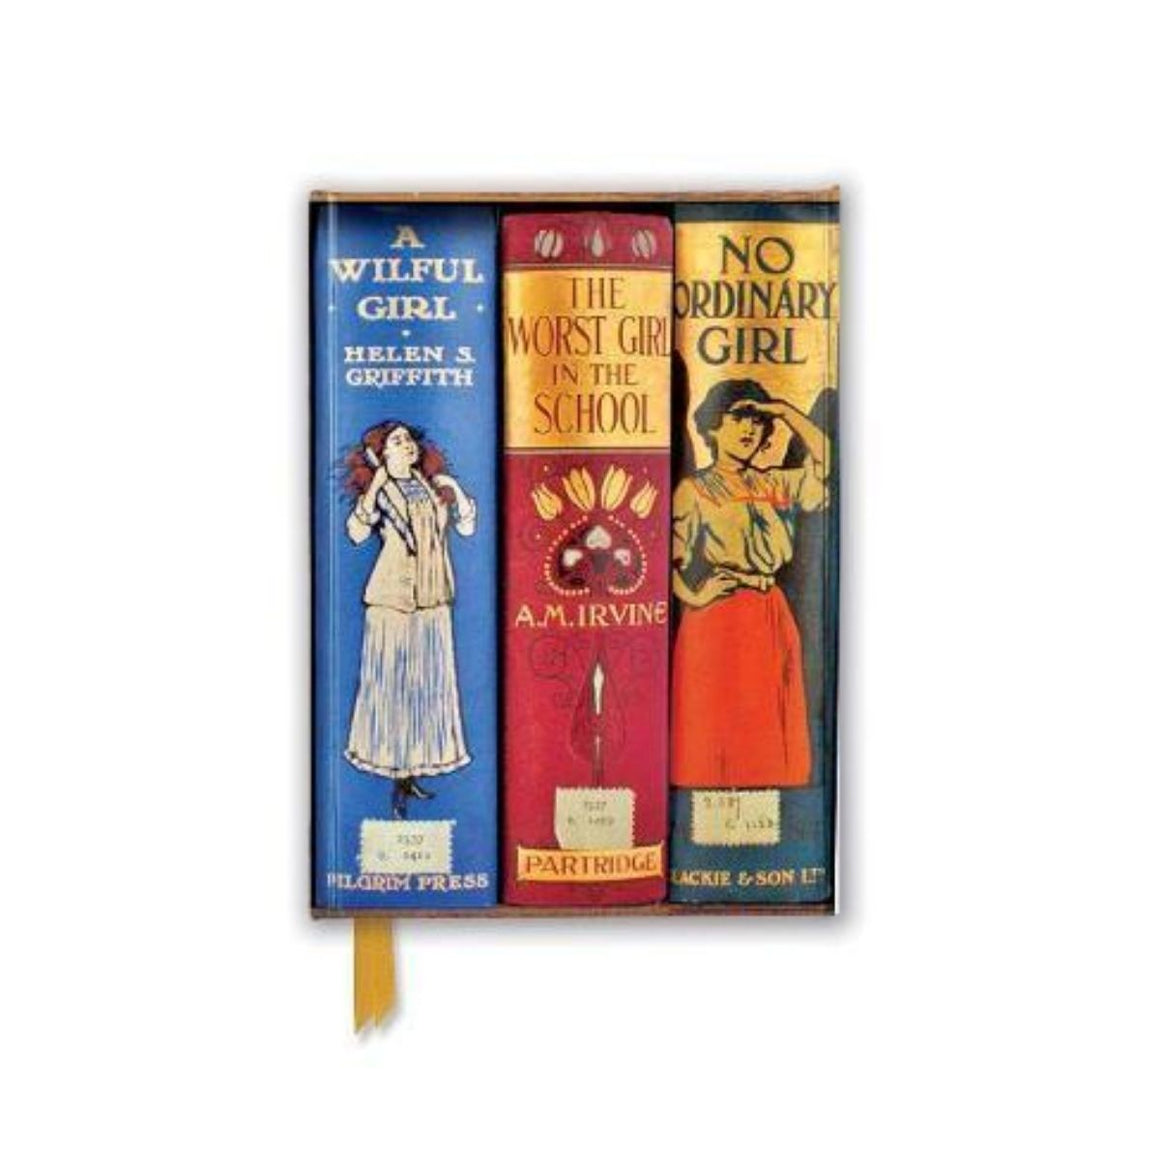 Notebook cover featuring a variety of different Bodleian Library book spines such as A wilful girl by helen s. griffith